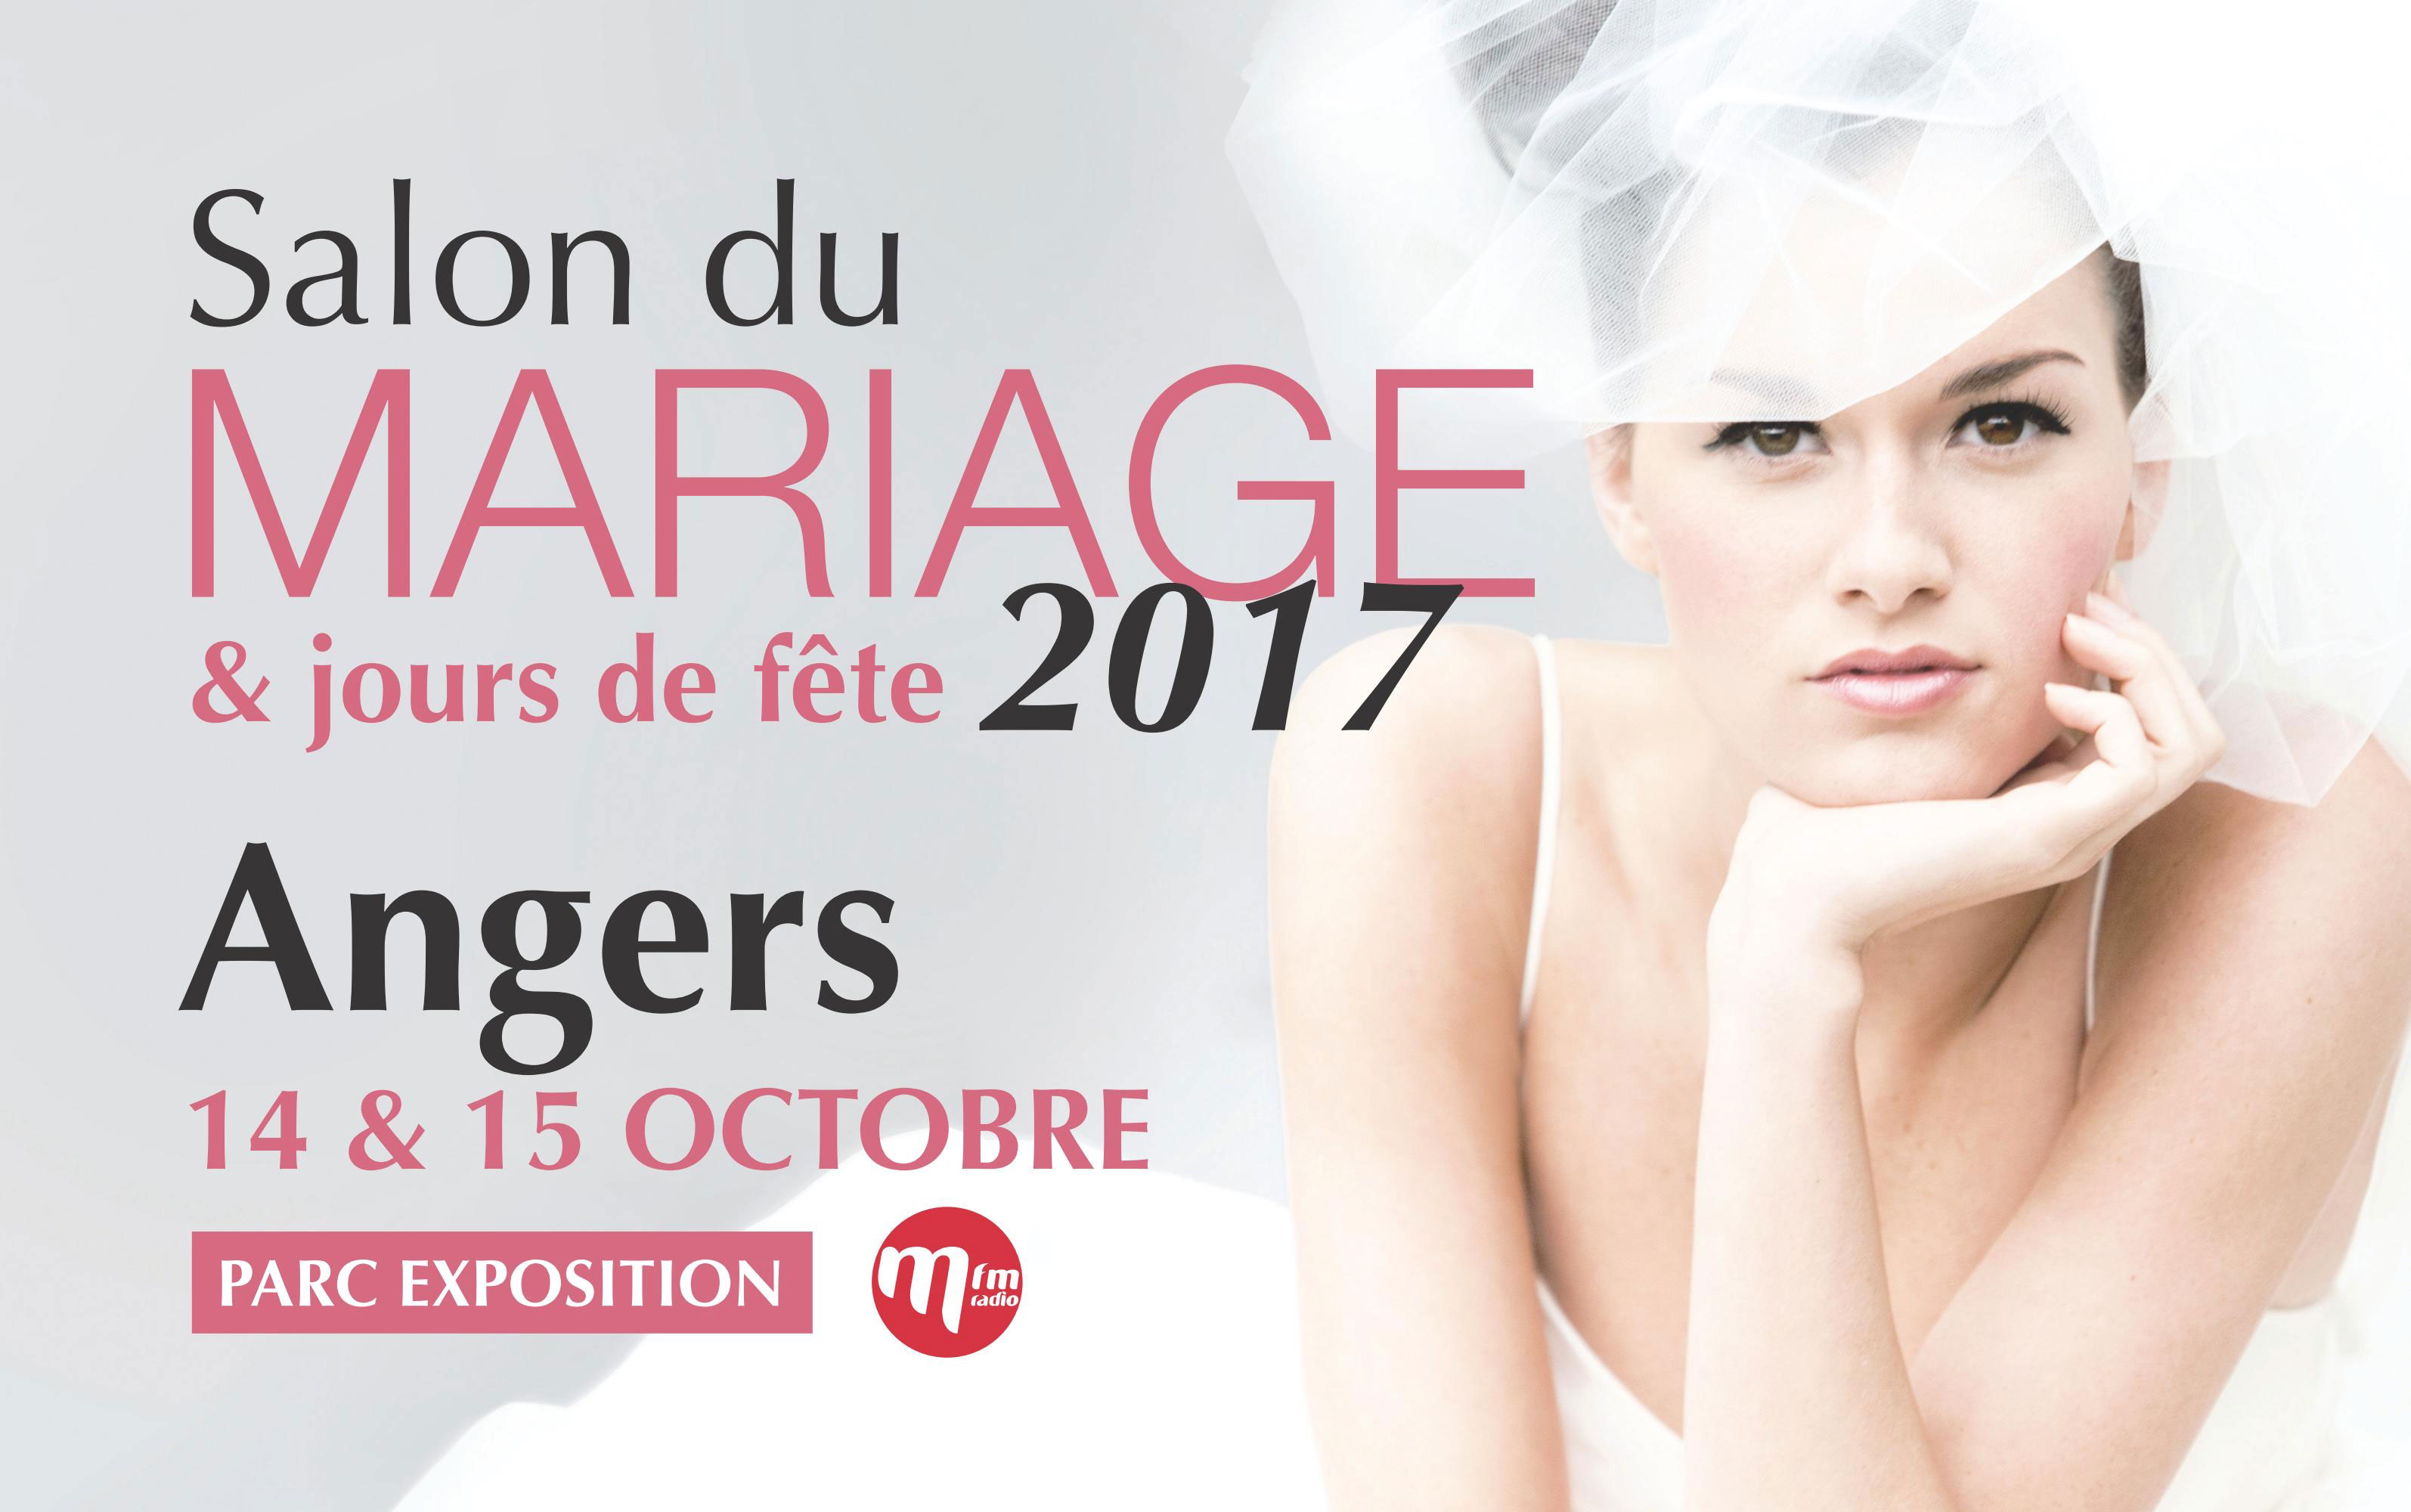 Salon du mariage angers 2017 for Salon du cannabis 2017